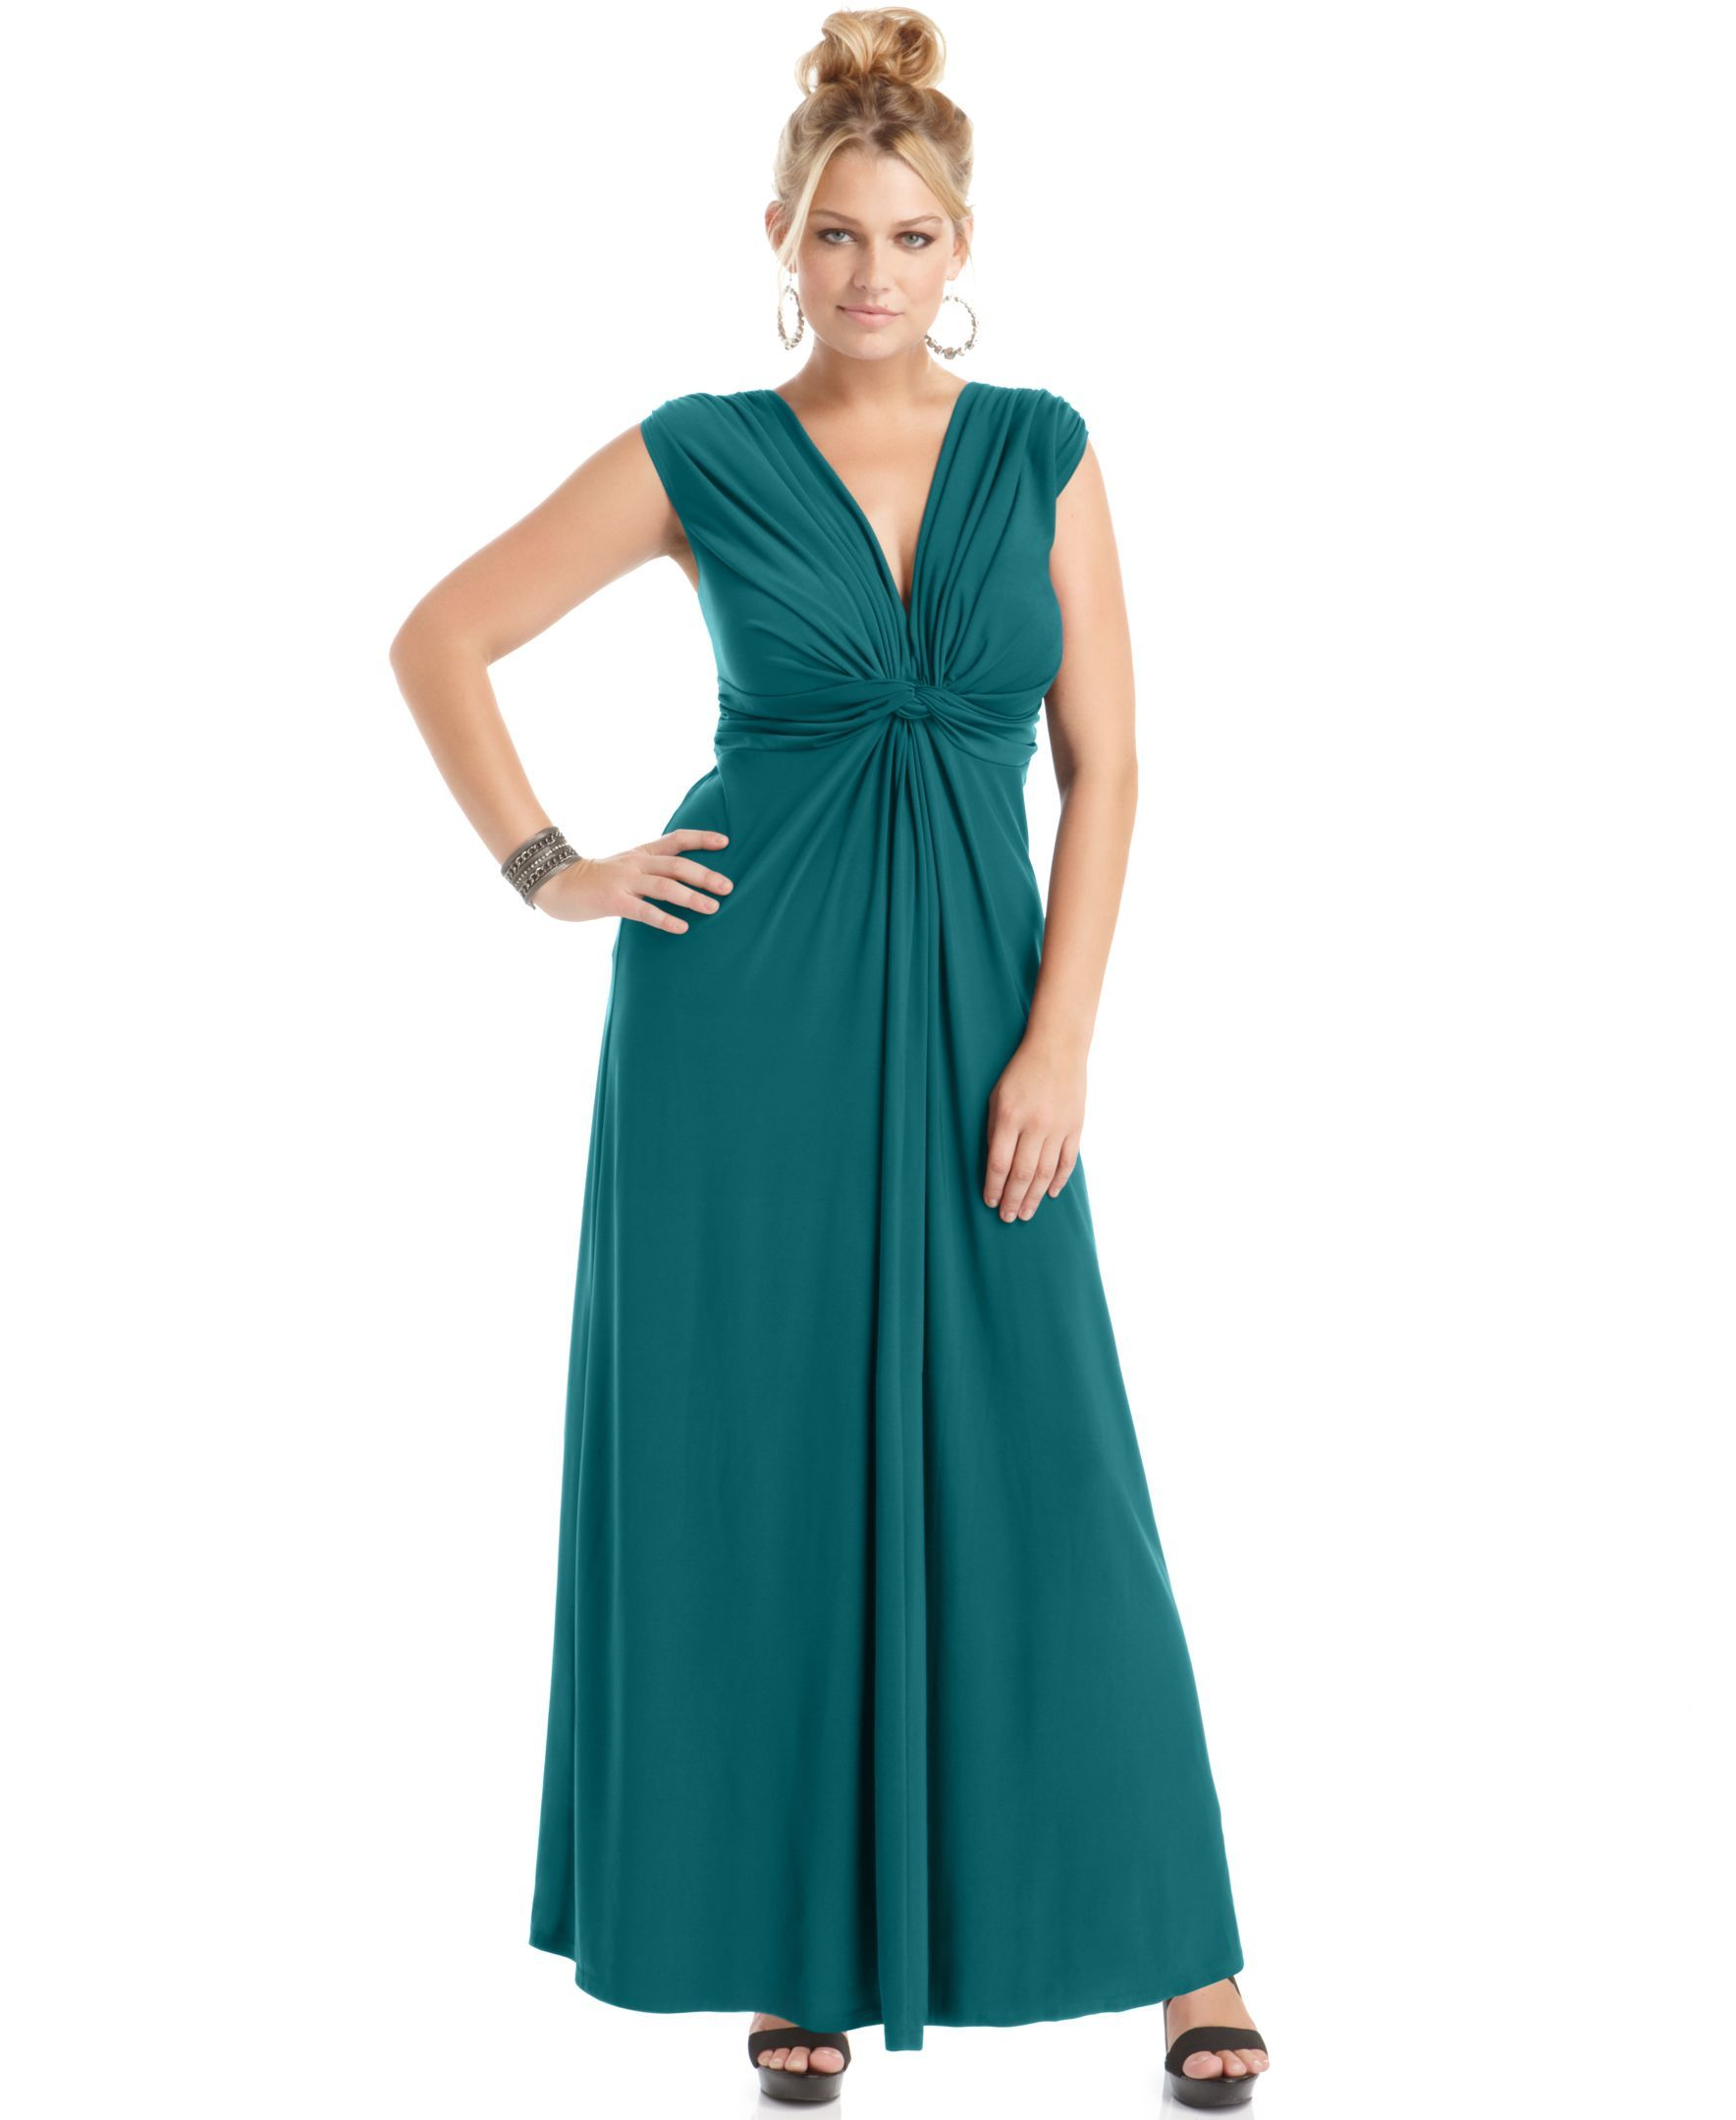 Love Squared Trendy Plus Size Sleeveless Knotted Maxi Dress | Shops ...